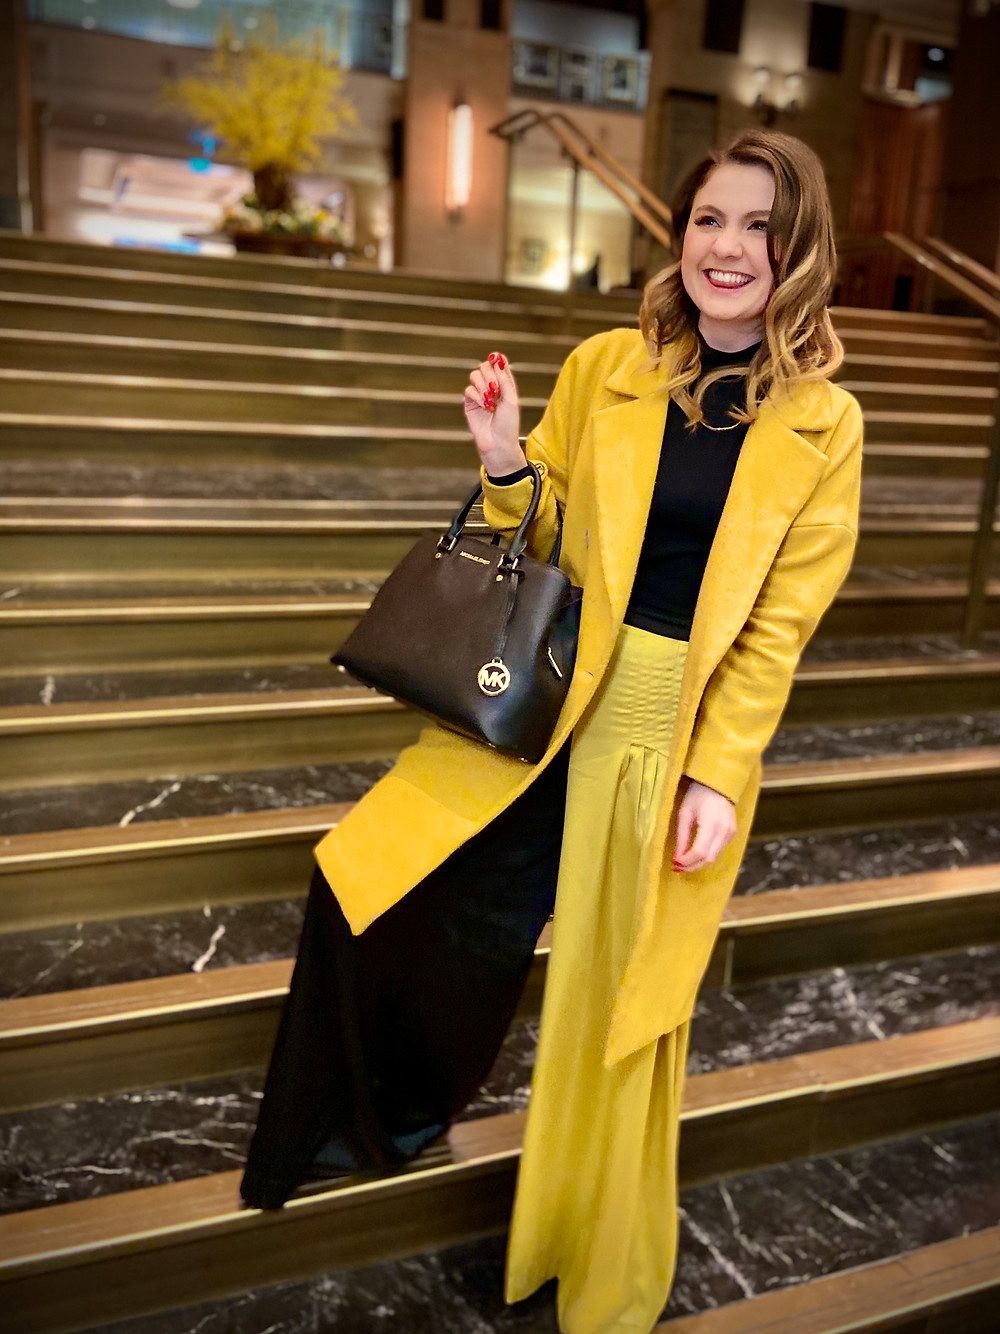 Rebecca wearing a fashionable yellow and black outfit, smiling and unaware of what is to come.